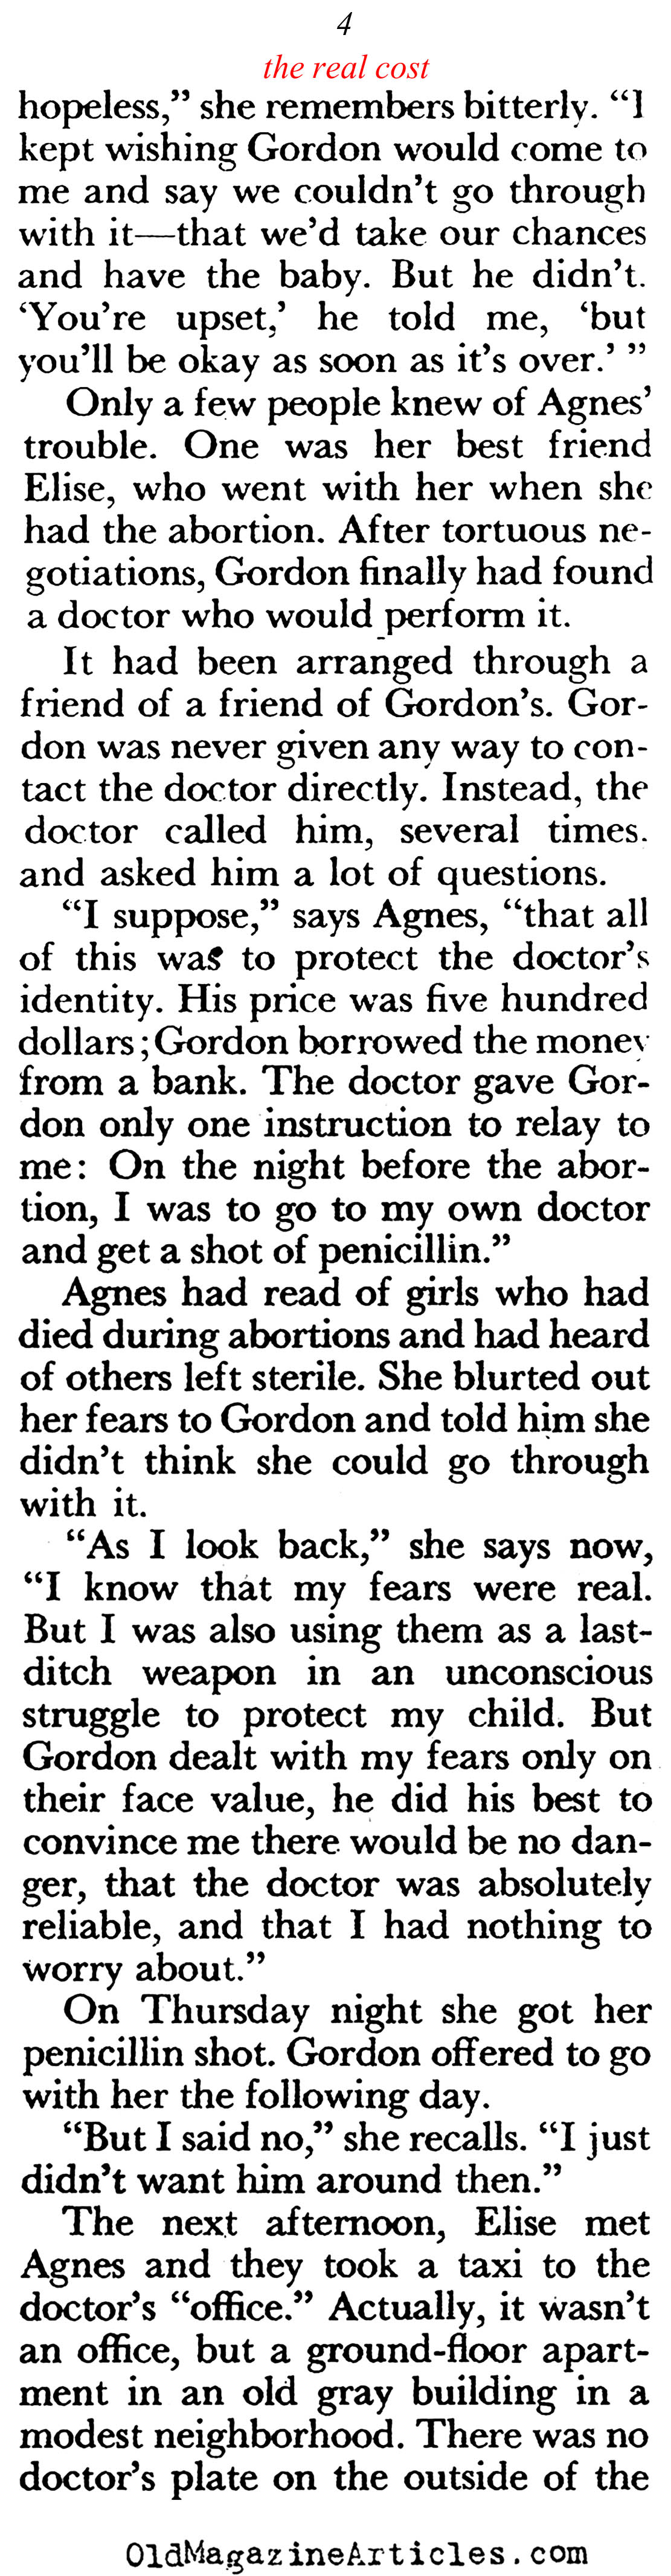 The Deep Regrets (Pageant Magazine, 1958)